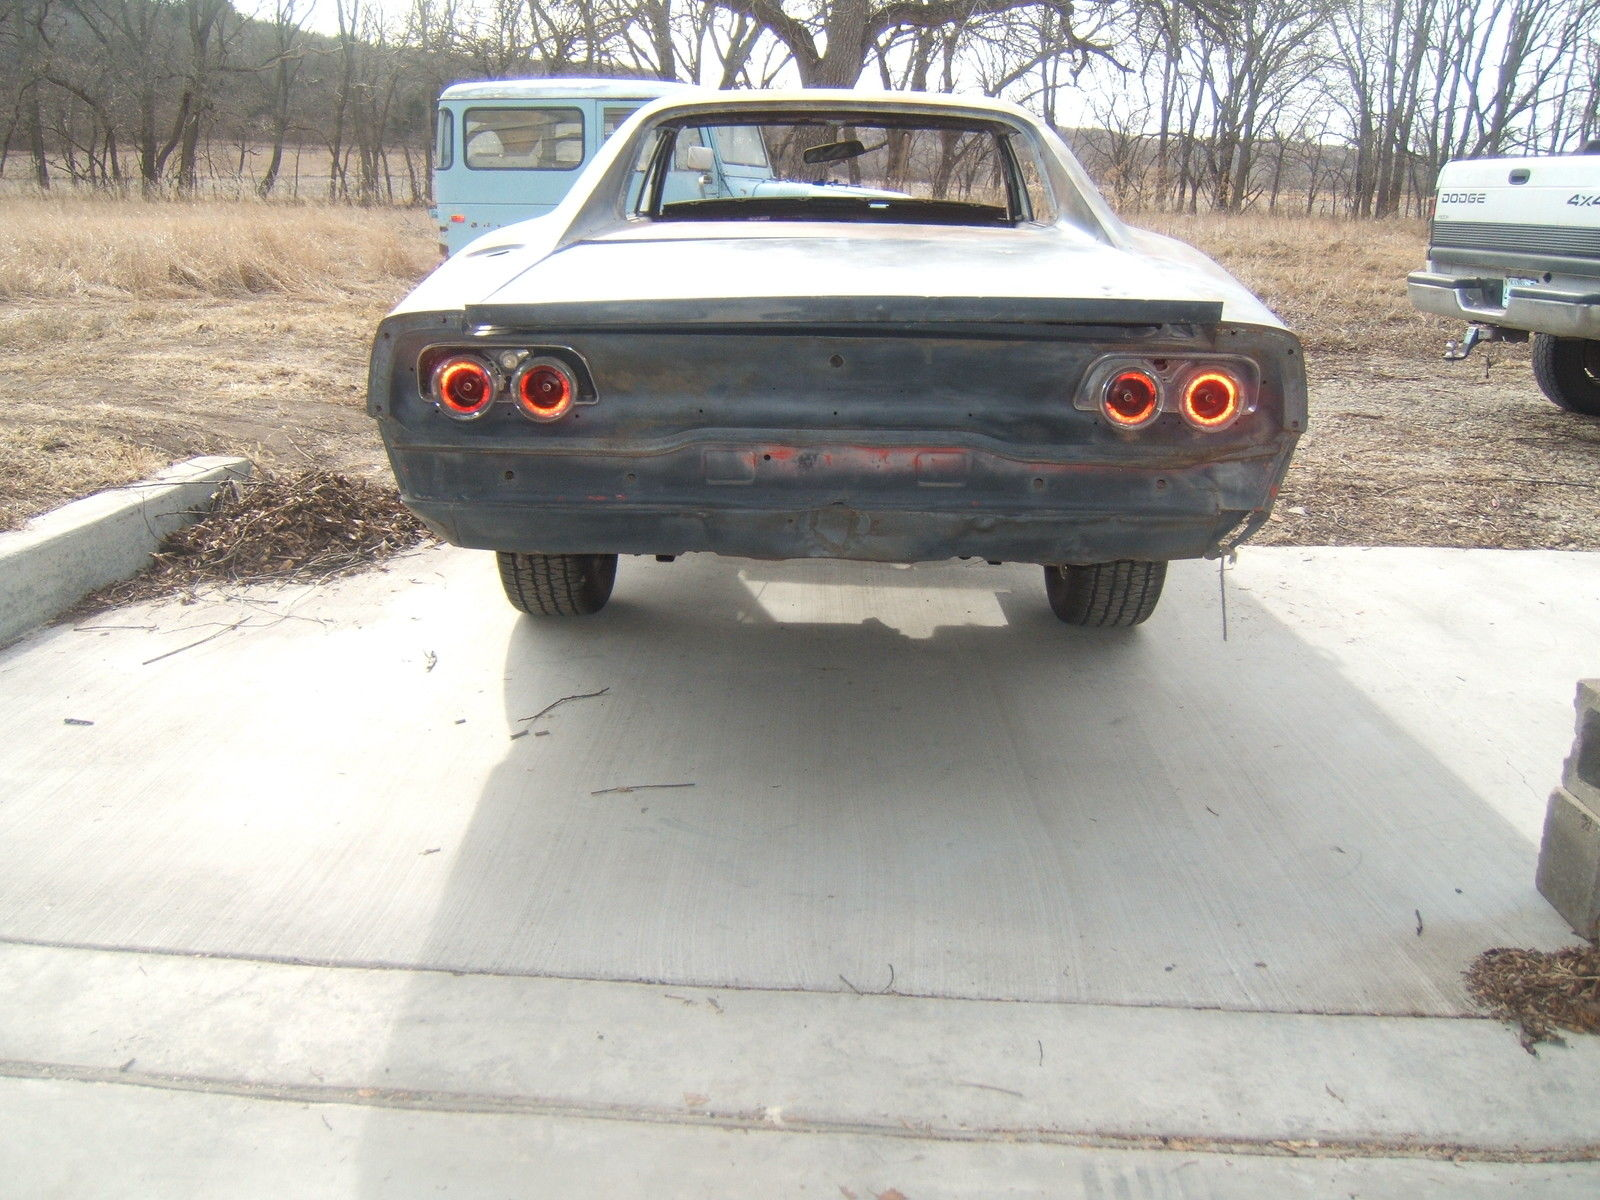 1970 Dodge Charger Rt Project Car Overall Solid Car For Sale: 1968 Dodge Charger Project Not RT Not 1969 Or 1970 Charger